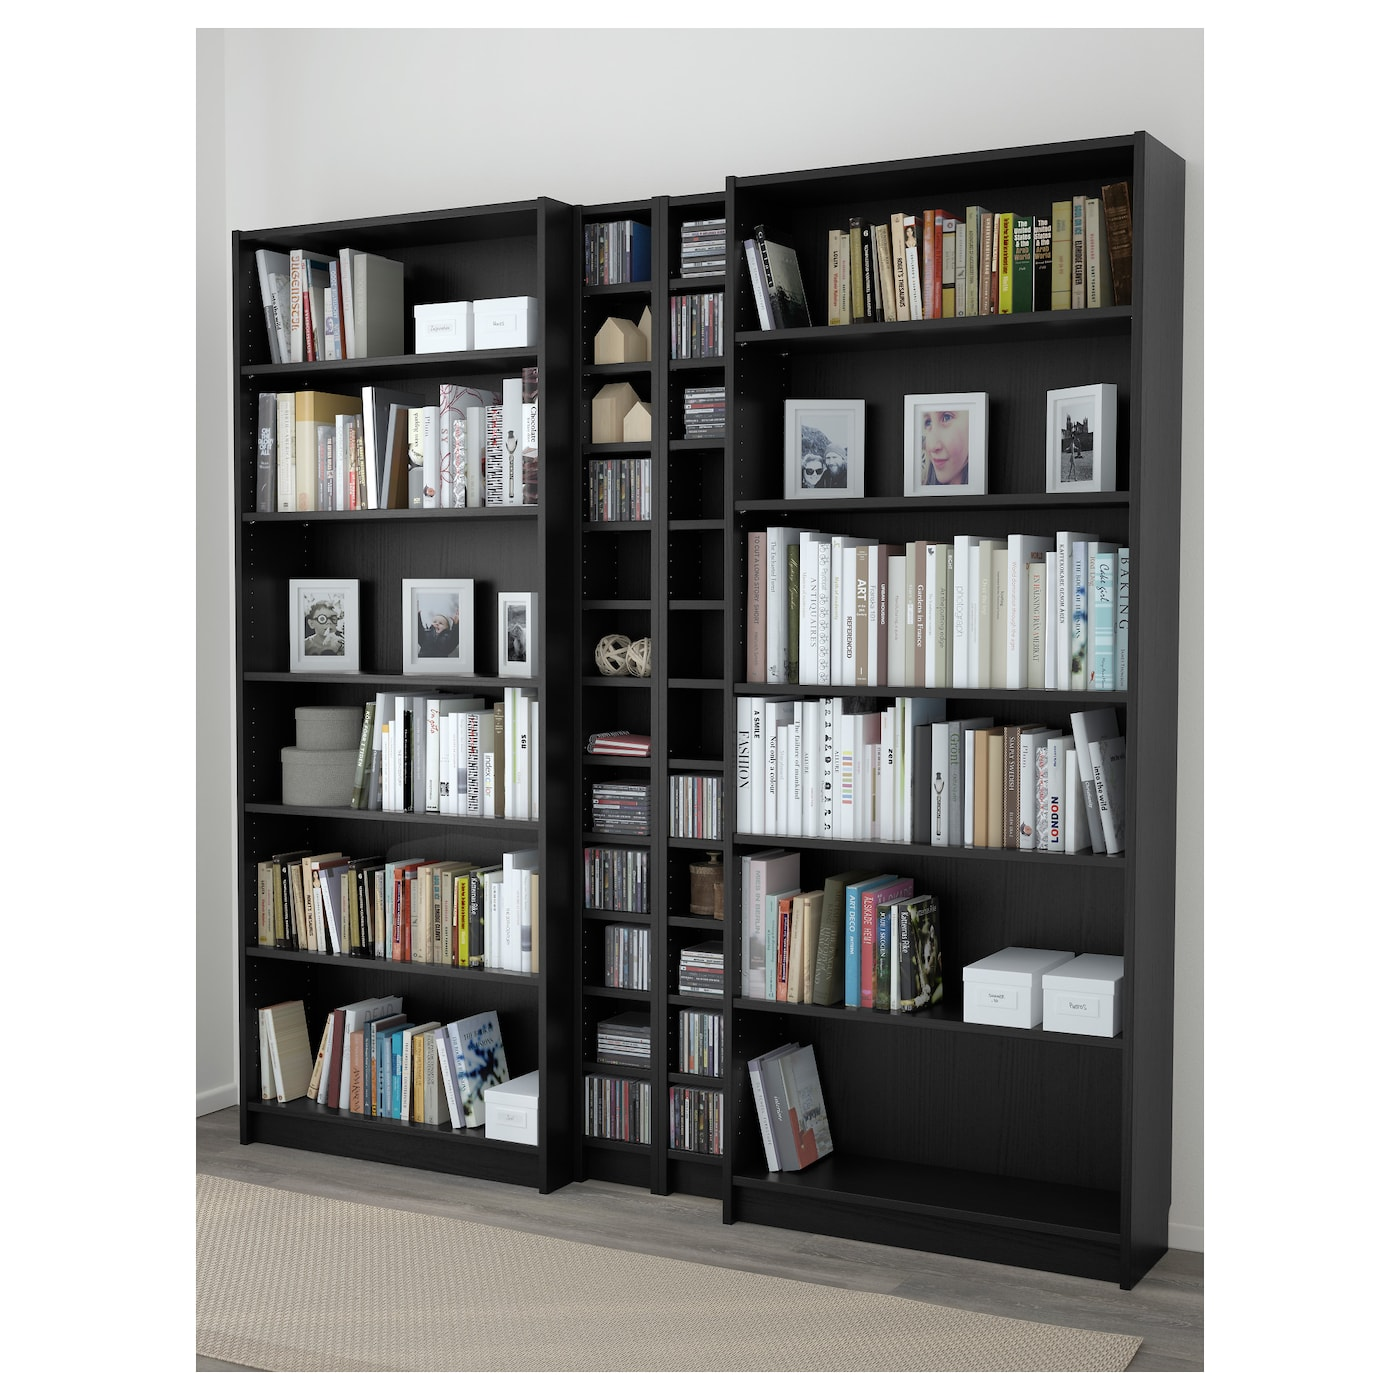 billy gnedby bookcase black brown 200x202x28 cm ikea. Black Bedroom Furniture Sets. Home Design Ideas